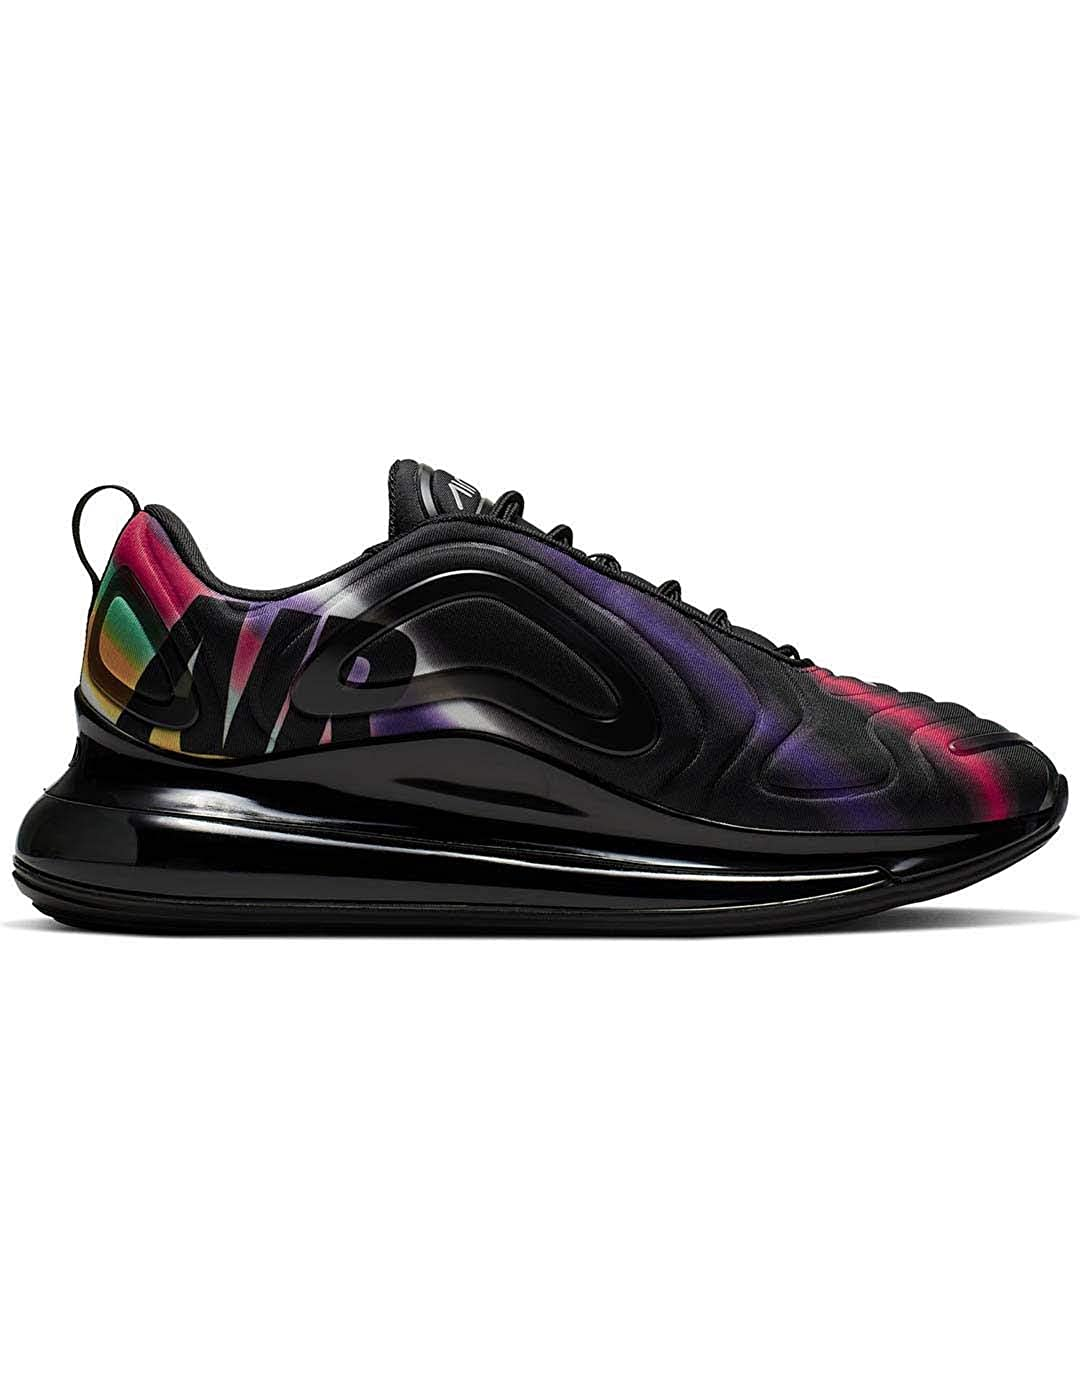 Nike Air Max 720 Sneakers Nero Multicolore AO2924 023 (42 Nero)